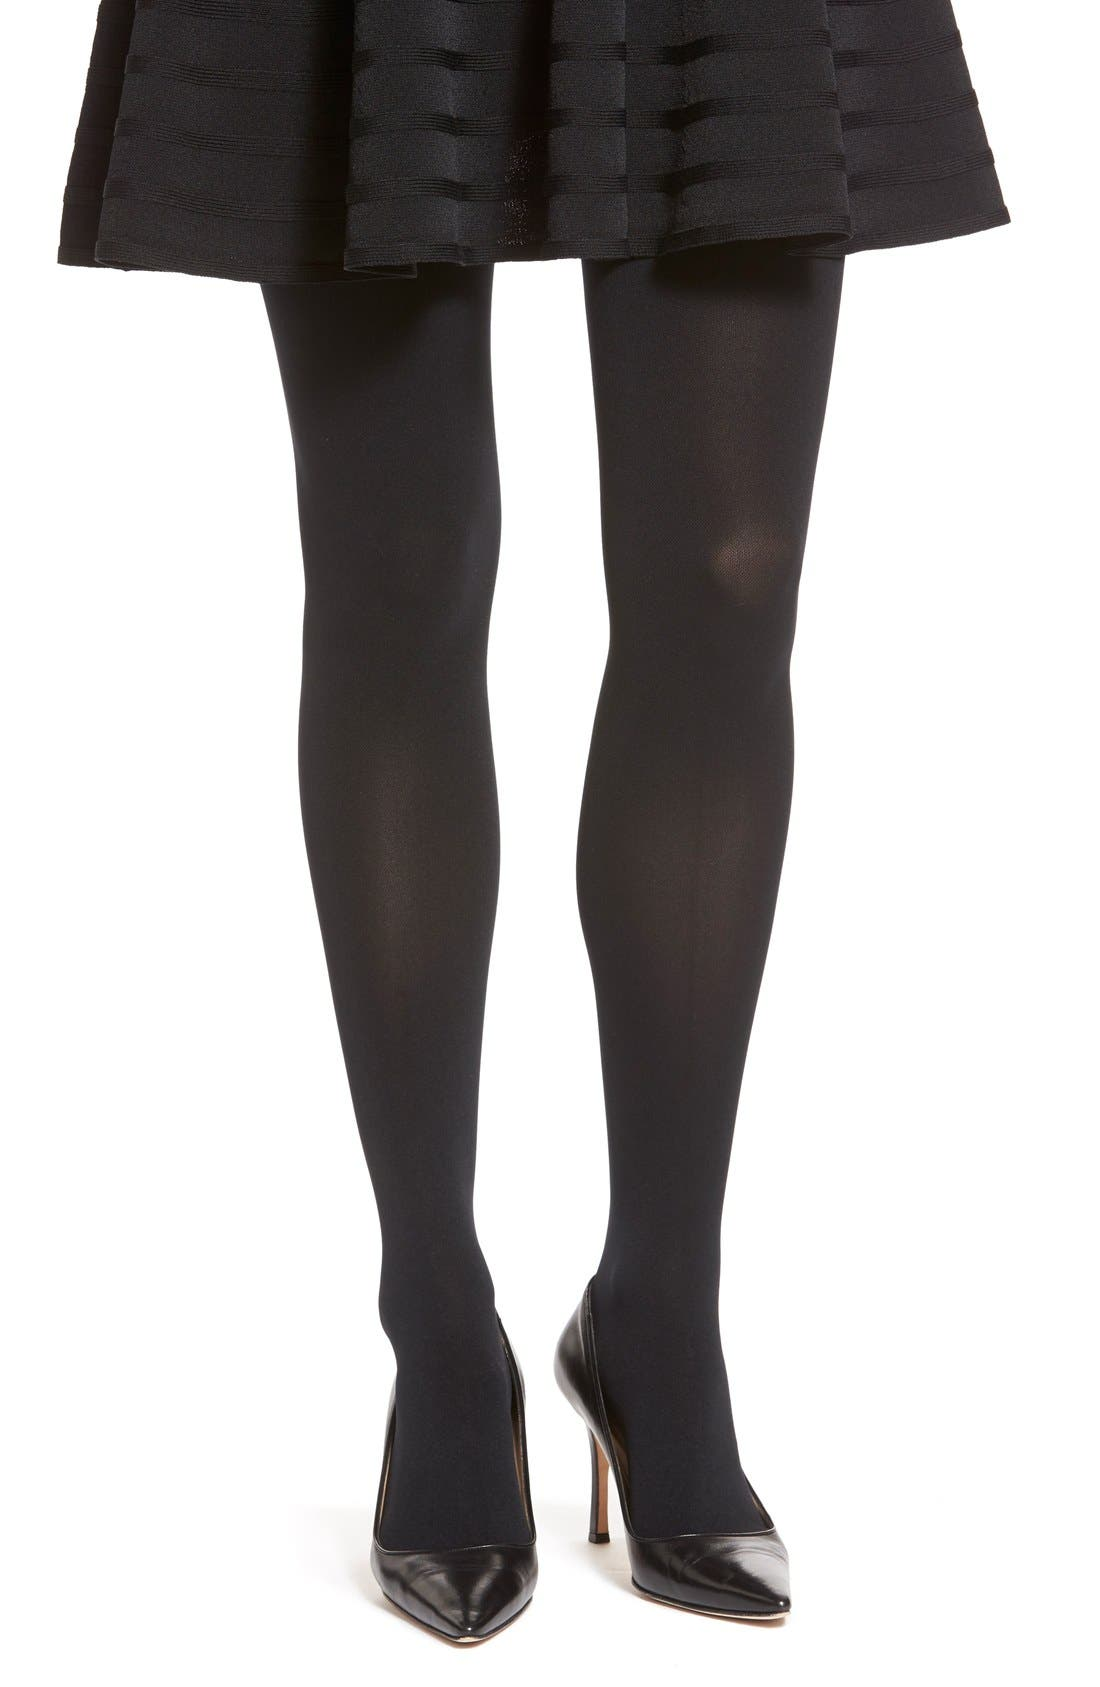 ITEM m6 Opaque Tights